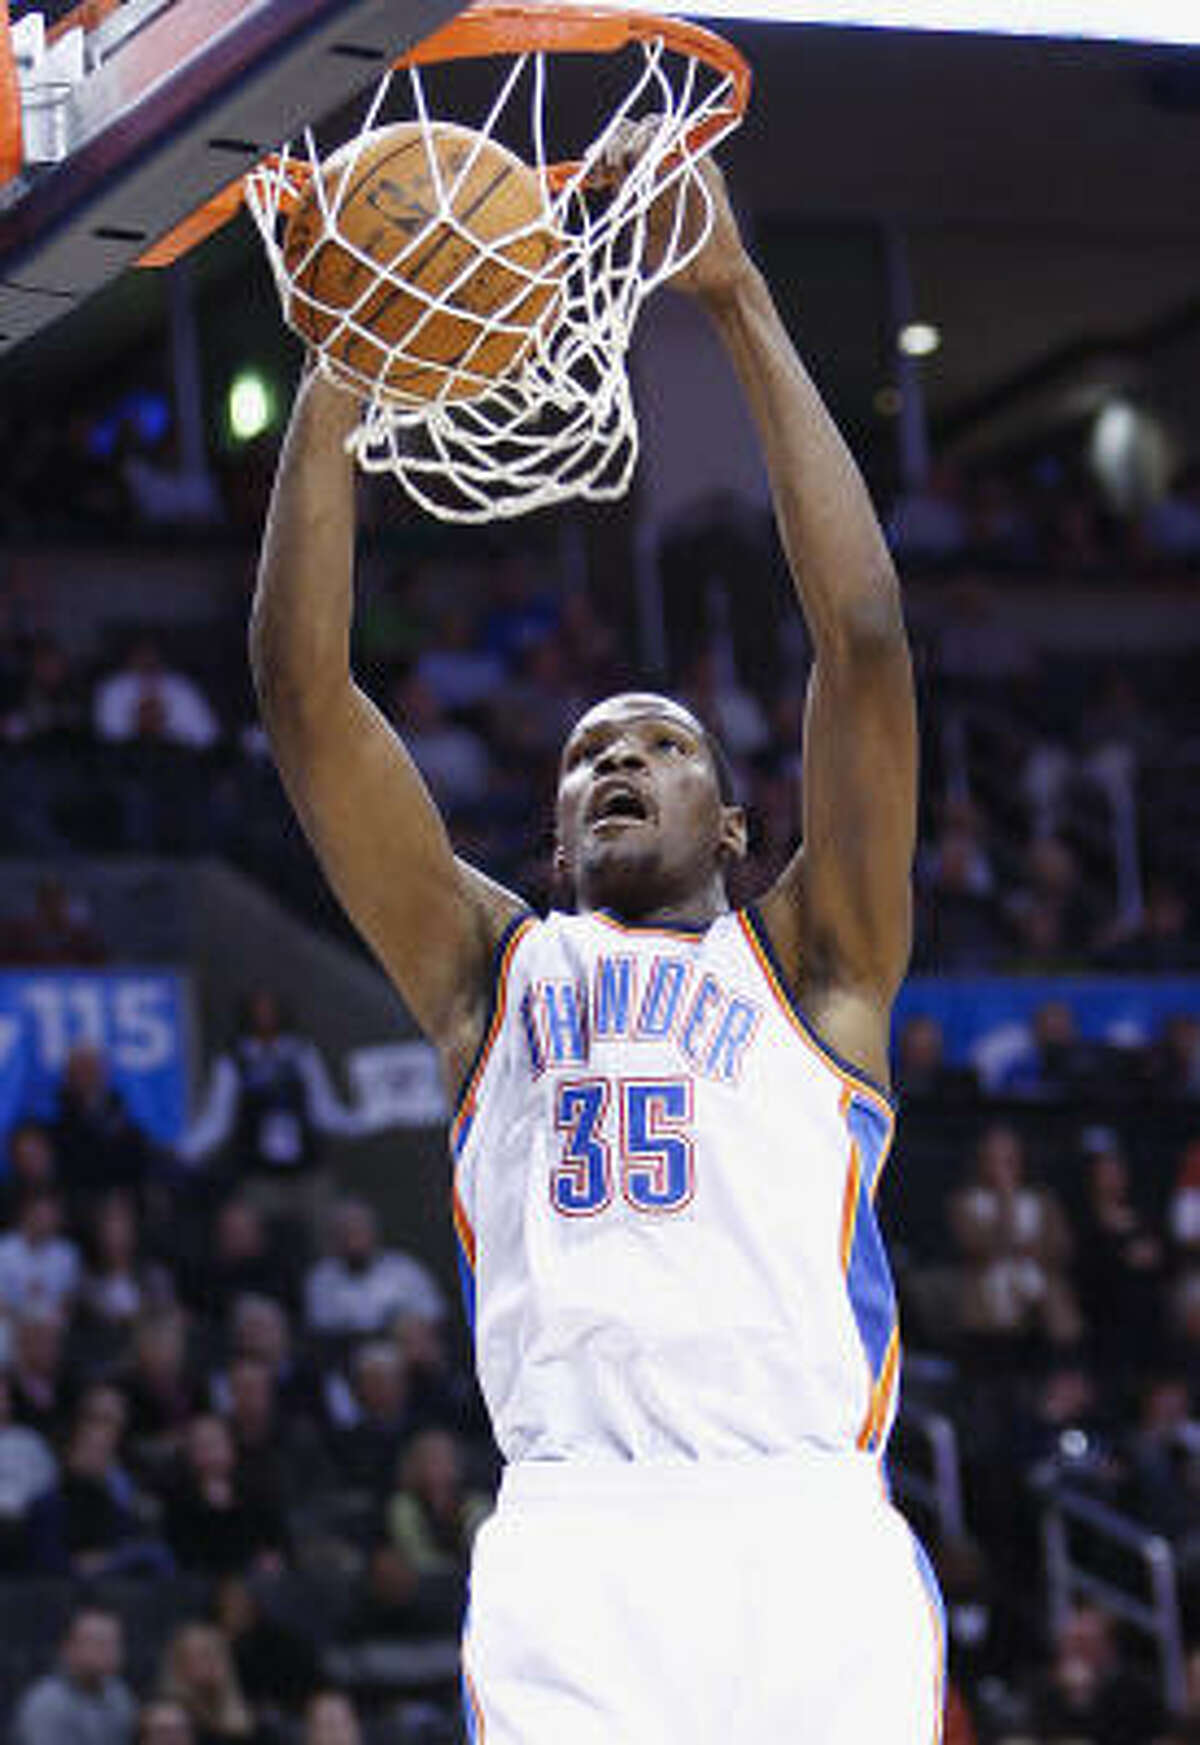 Thunder forward Kevin Durant slams home a dunk. He finished with a game-high 32 points.